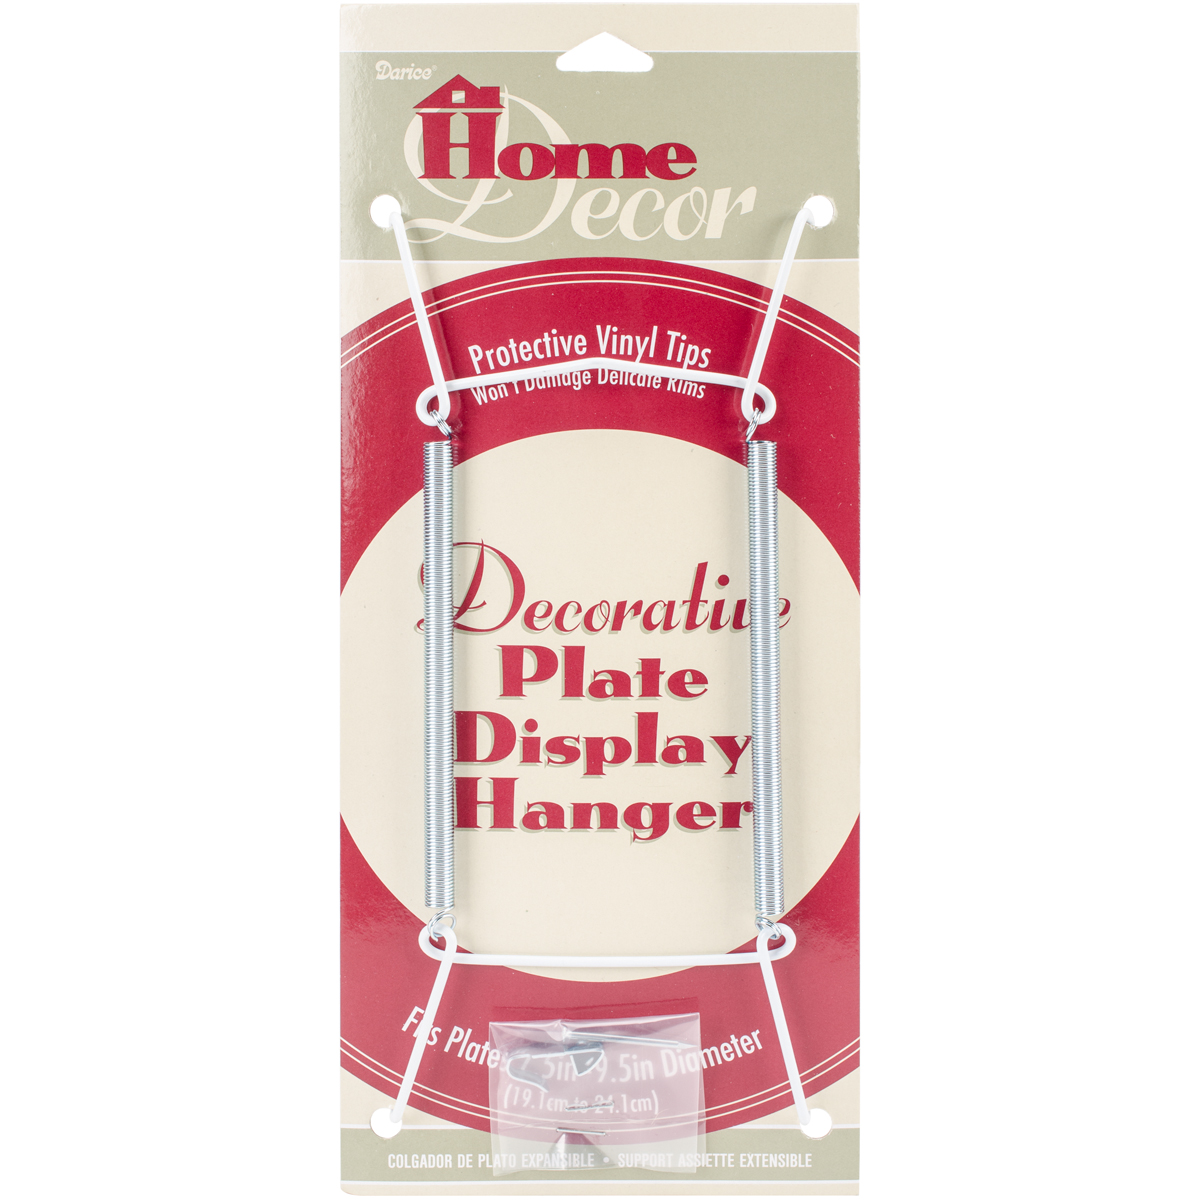 "Decorative Plate Display Hanger Expandable 7.5"" To 9.5""-White"